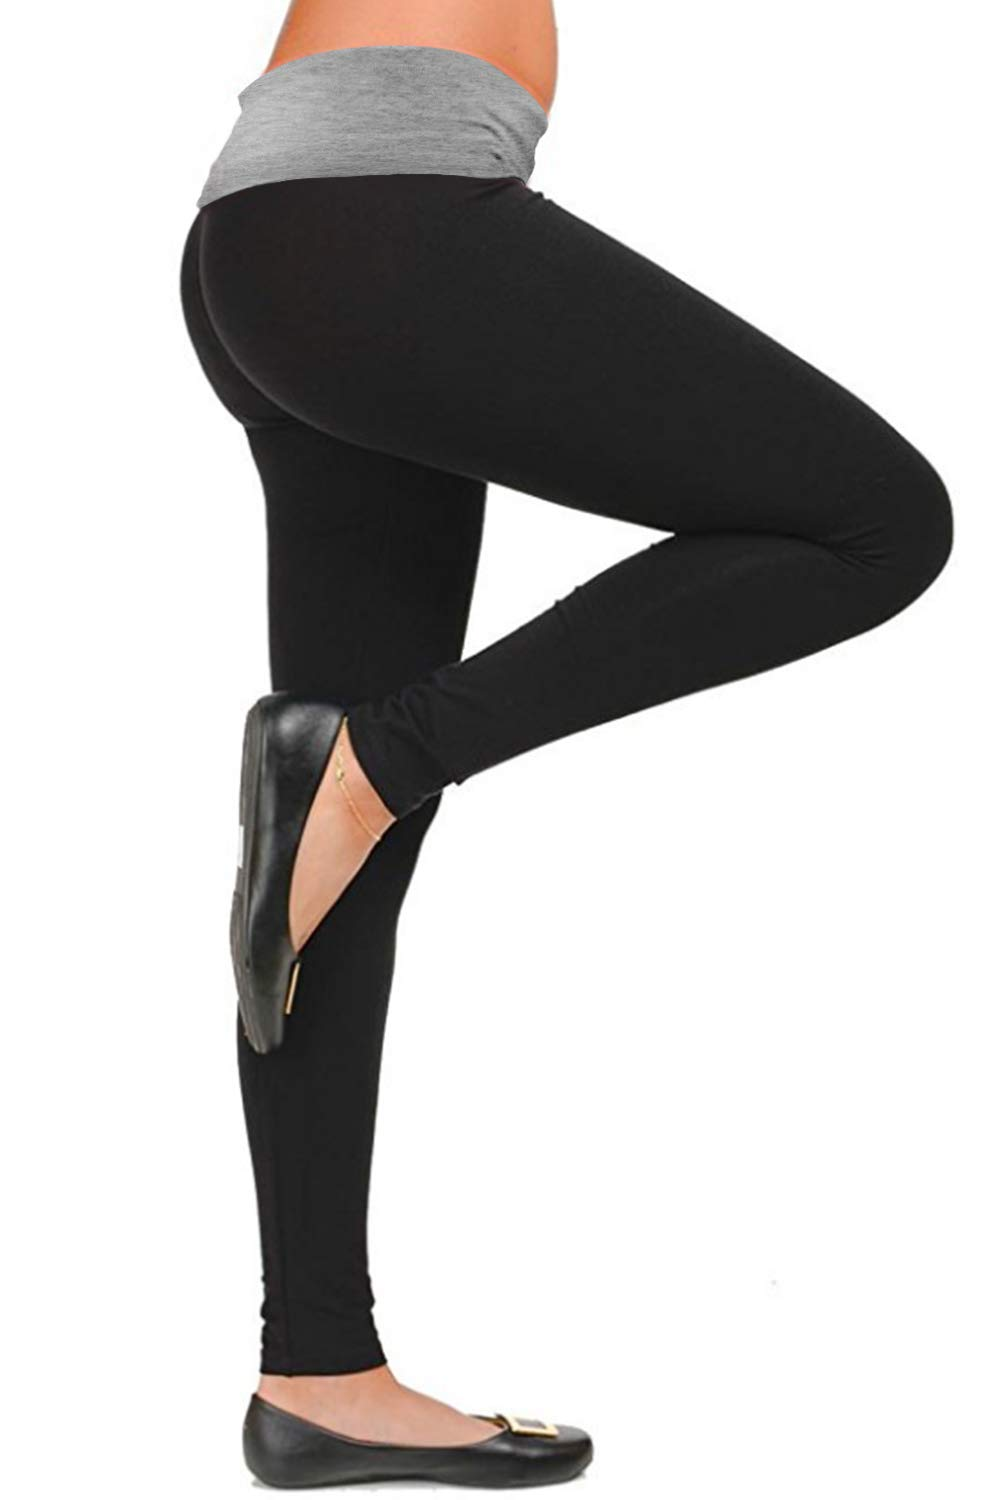 FASHION BOOMY Women's Bootleg Yoga Pants with Foldover Waist - Active Workout Flare Leggings